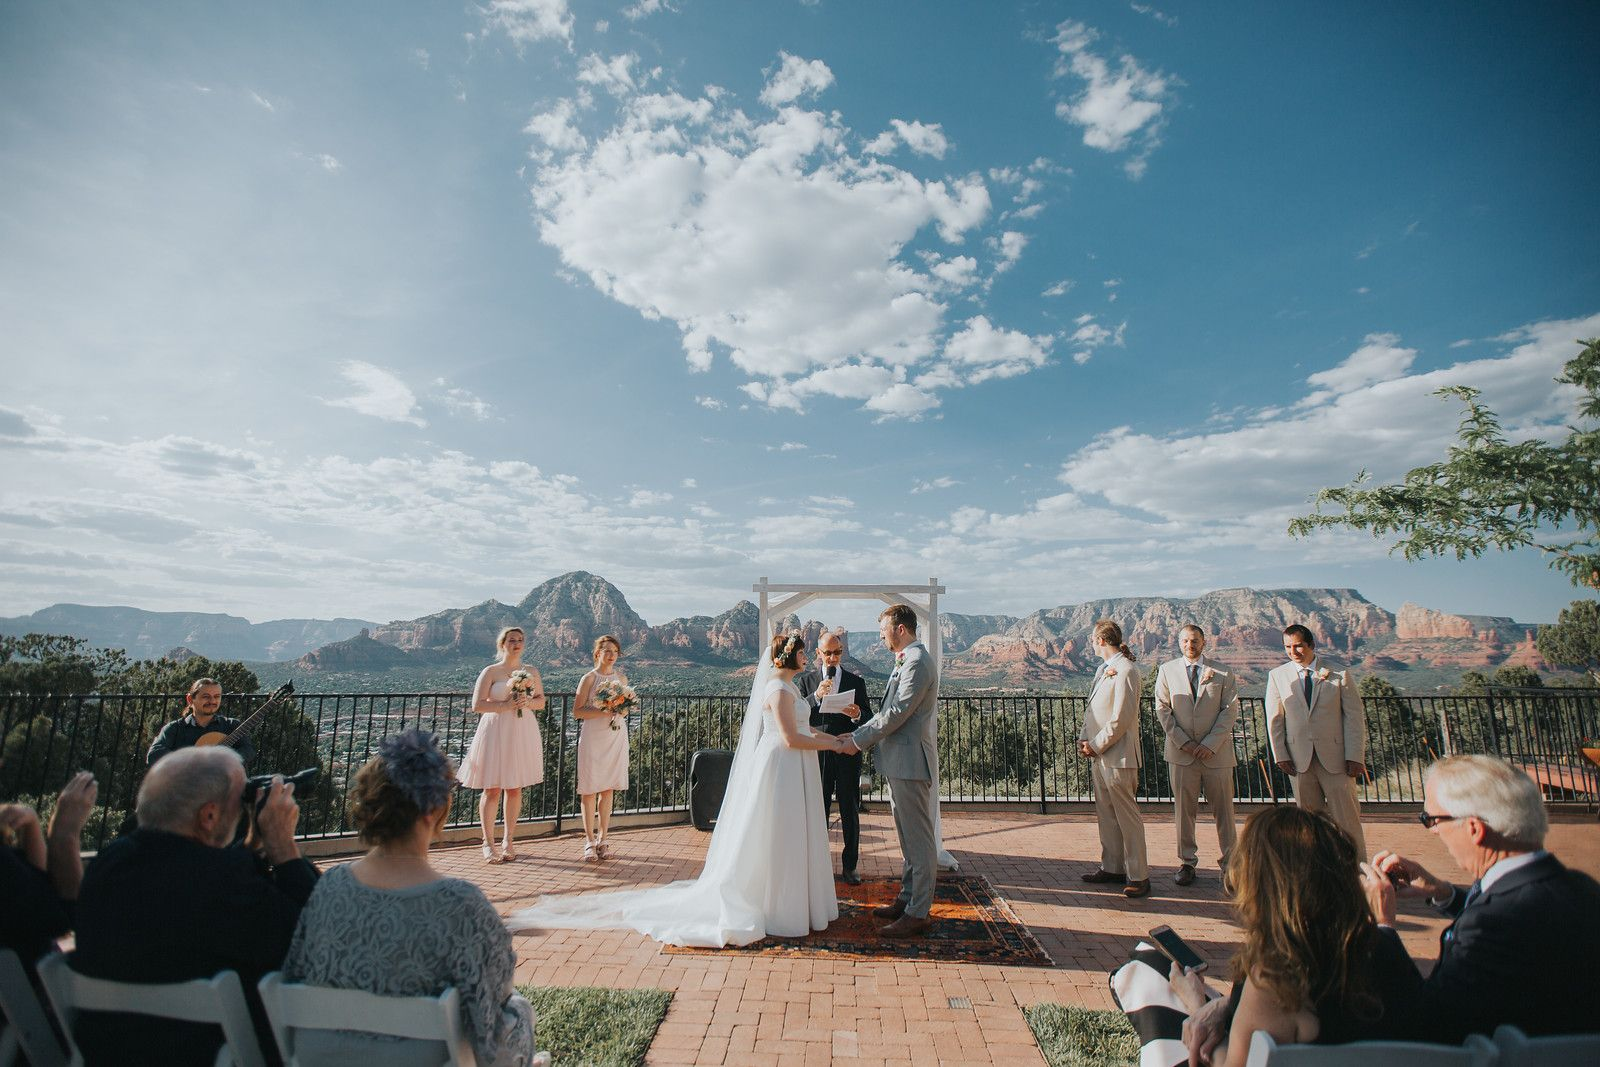 Leah Max Marry At Sky Ranch Lodge Heart Of Sedona Weddings Photo R Gonzalez Floral Mountain High Flowers M Sedona Arizona Sedona Wedding Sedona